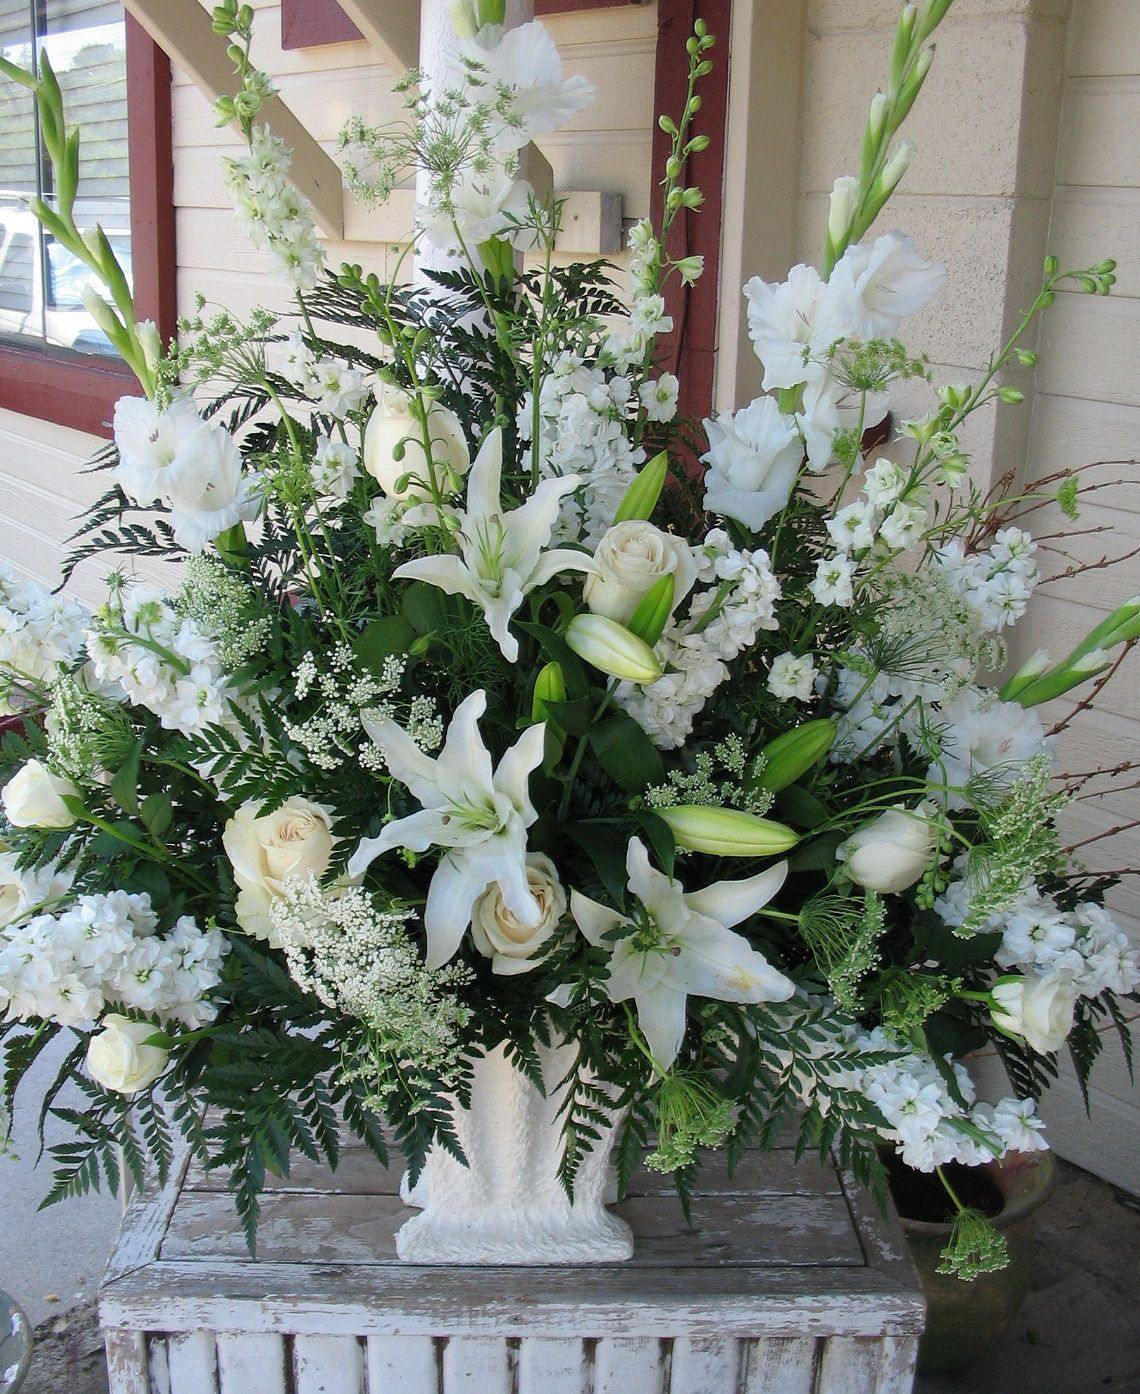 Flowers For Church Wedding Ceremony: CHURCH WEDDING ALTER FLOOWERS